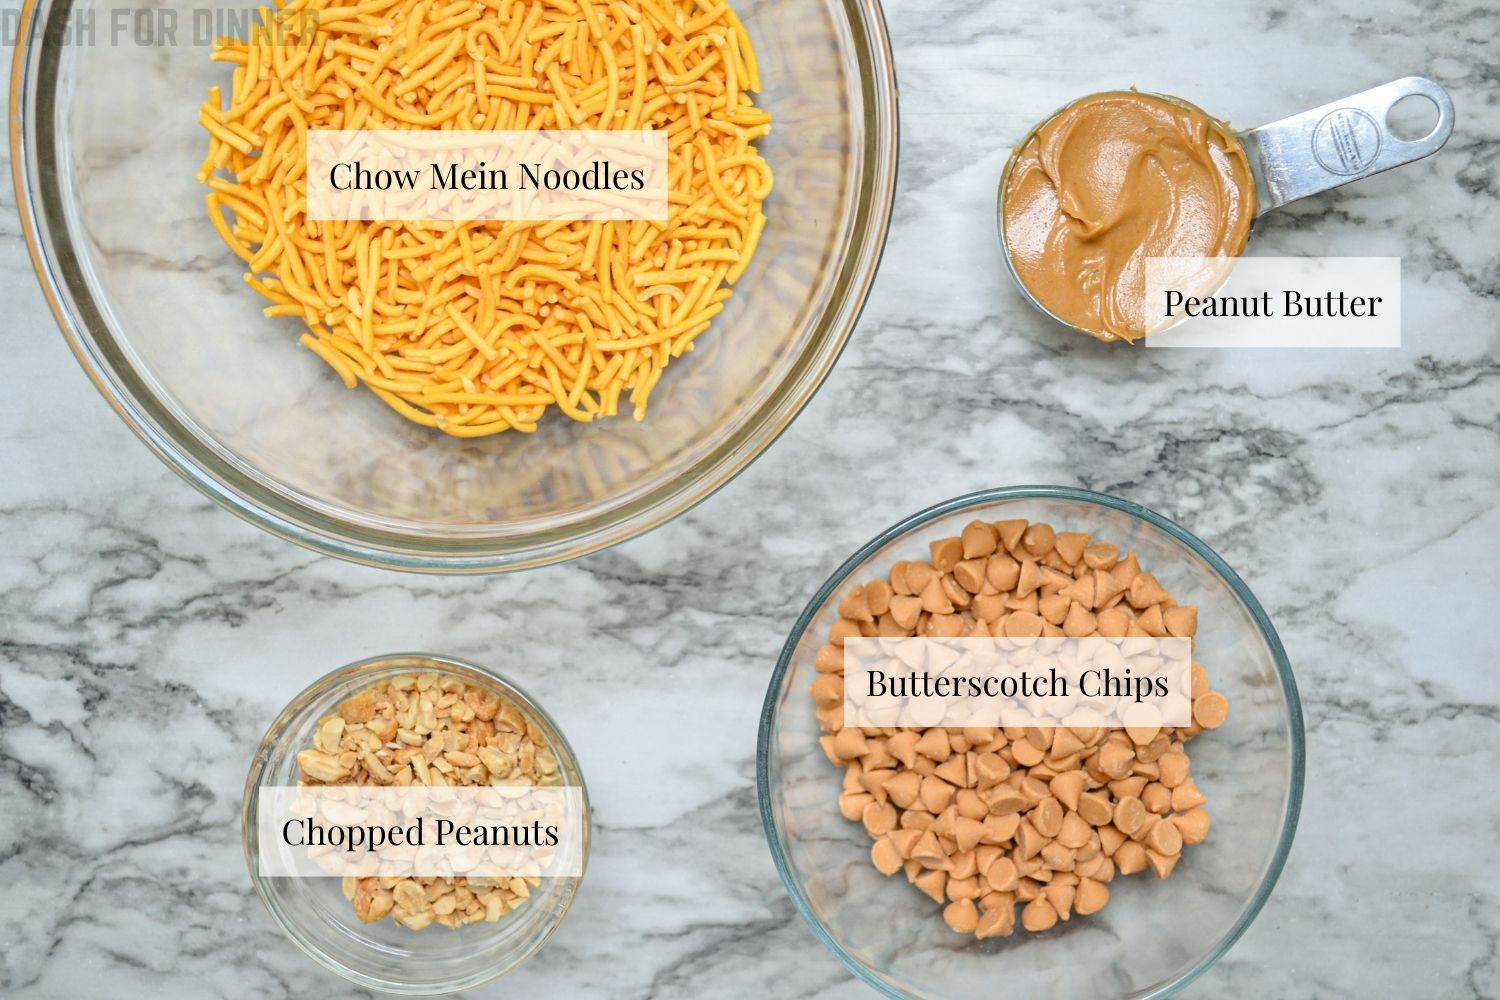 The ingredients needed to make butterscotch haystacks